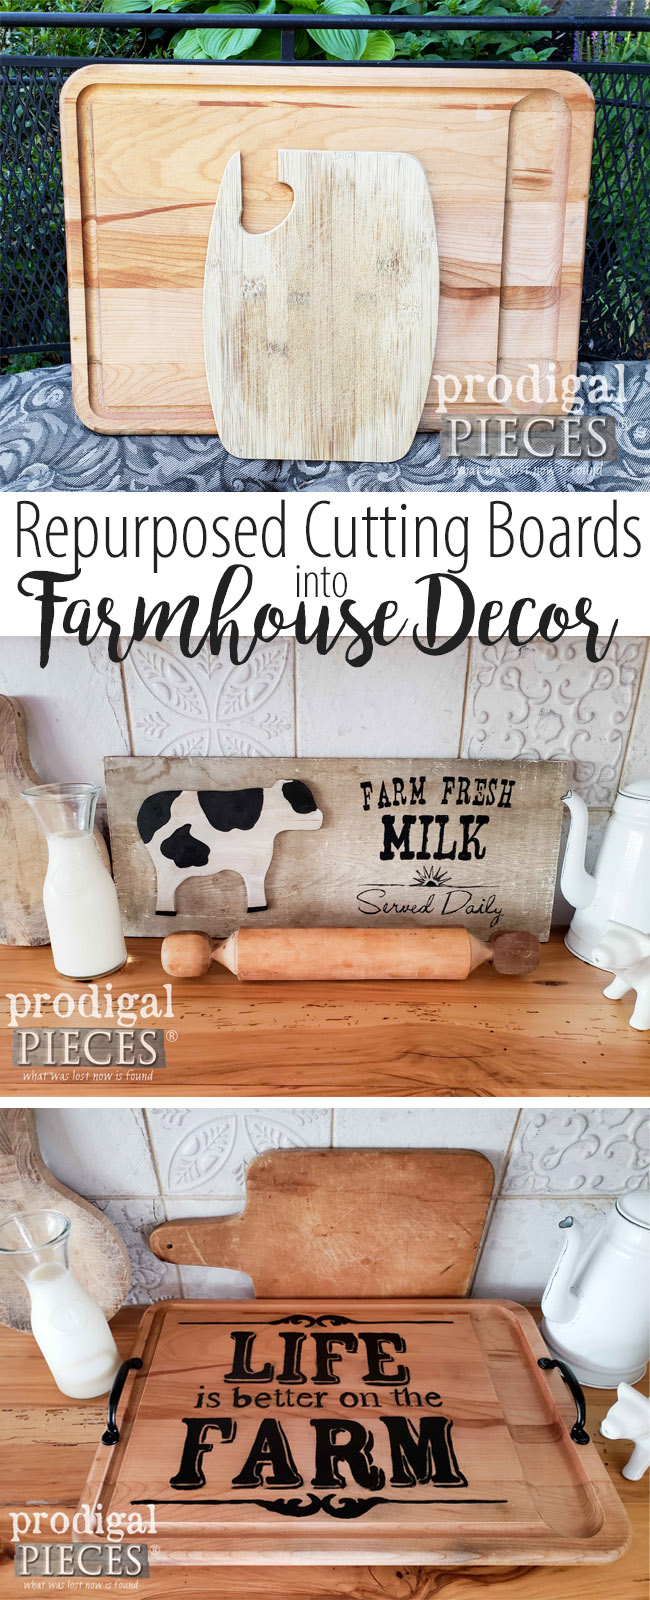 Don't toss out those old cutting boards. See how Larissa of Prodigal Pieces took these repurposed cutting boards a whole new life. See the details at prodigalpieces.com #prodigalpieces #trashure #farmhouse #homedecor #handmade